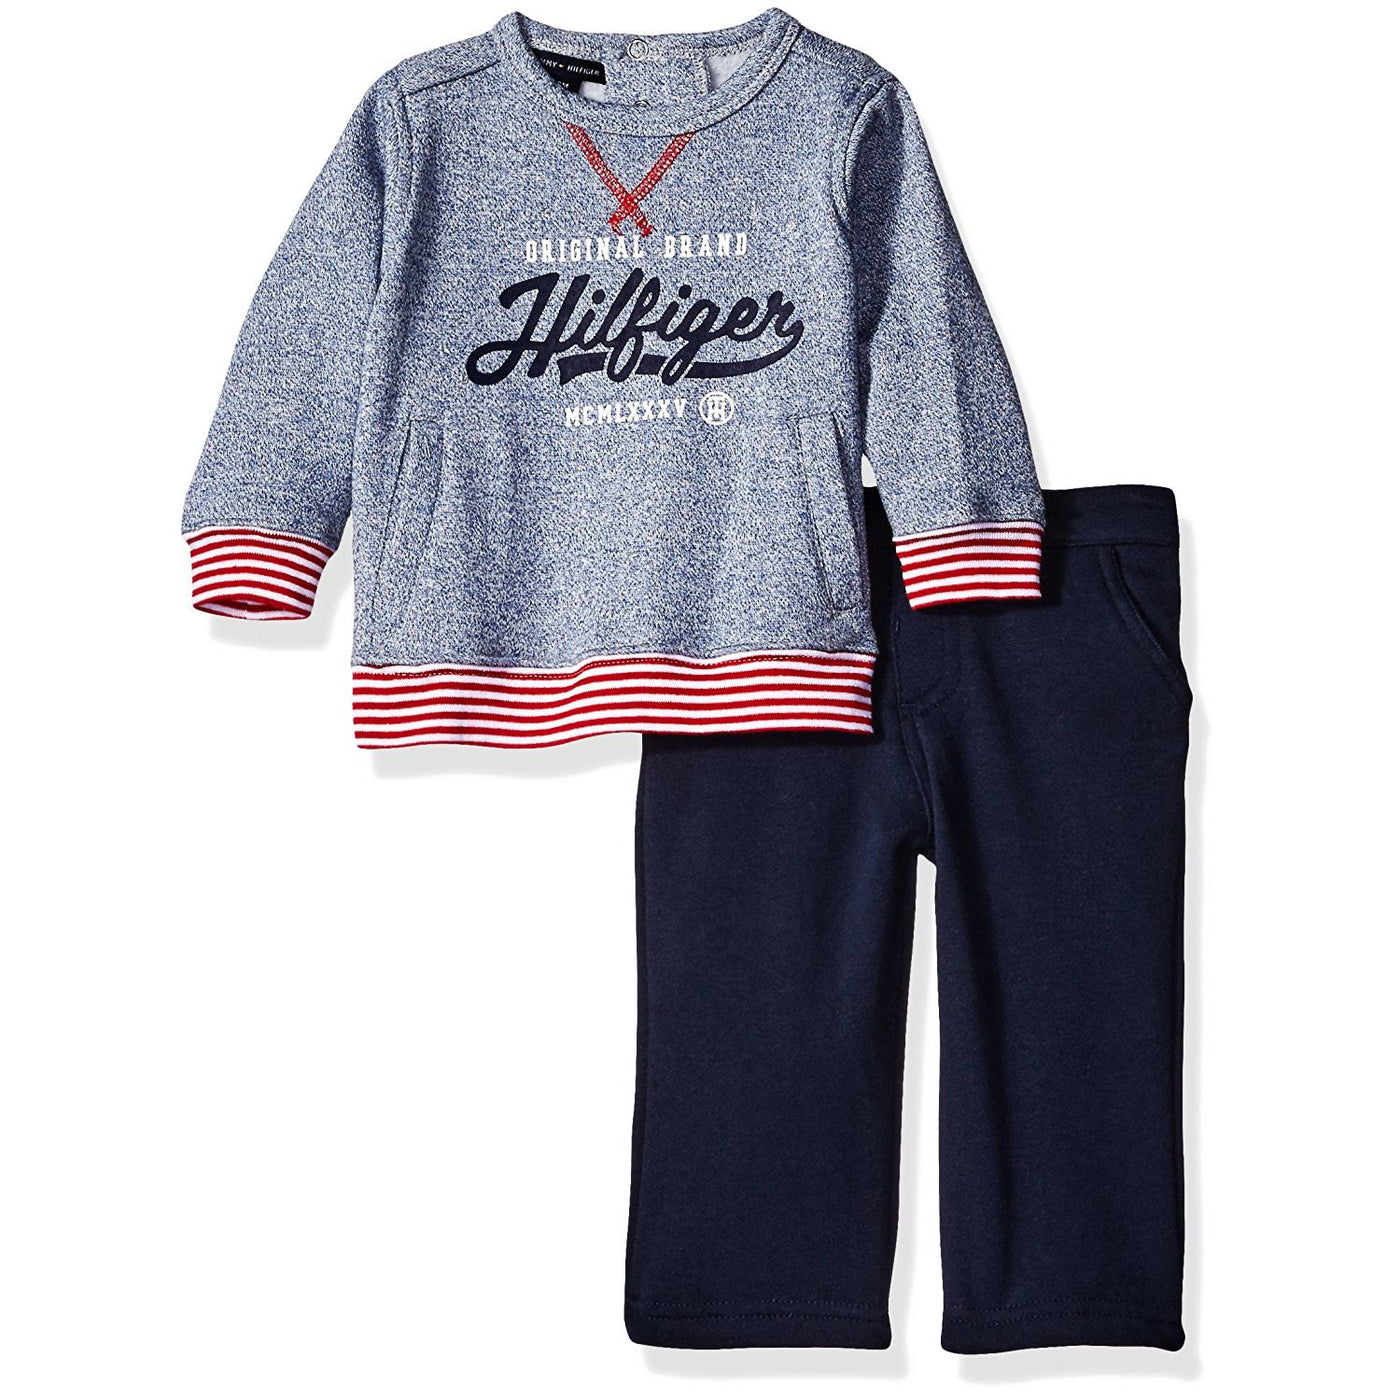 55ef79aa8848 Tommy Hilfiger Baby Boys  Pull Over with Pants Set – Munchkinz